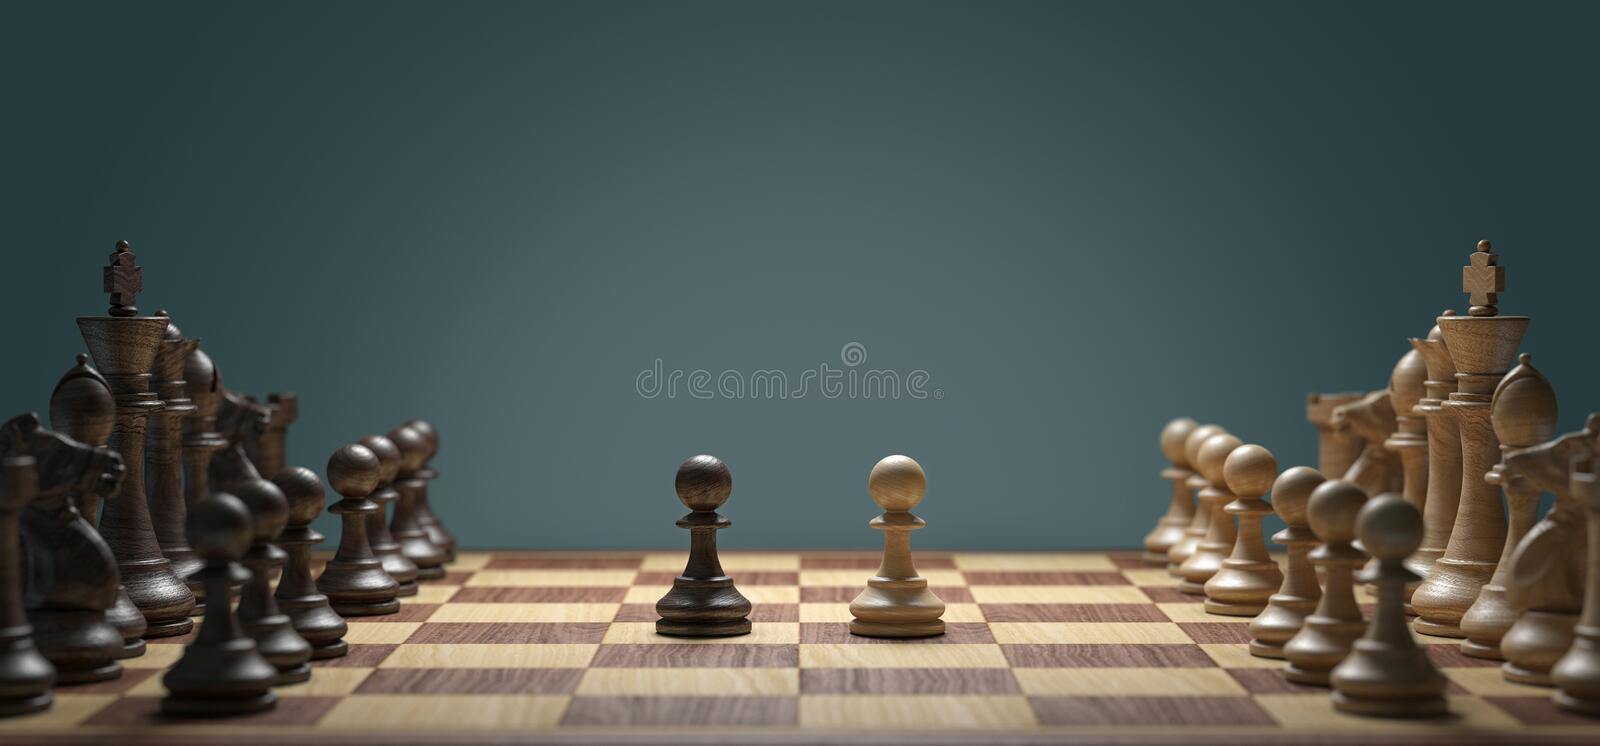 Pawn Face Off In Chess Game. An army of chess players with pawns of the opposing sides facing each other vector illustration